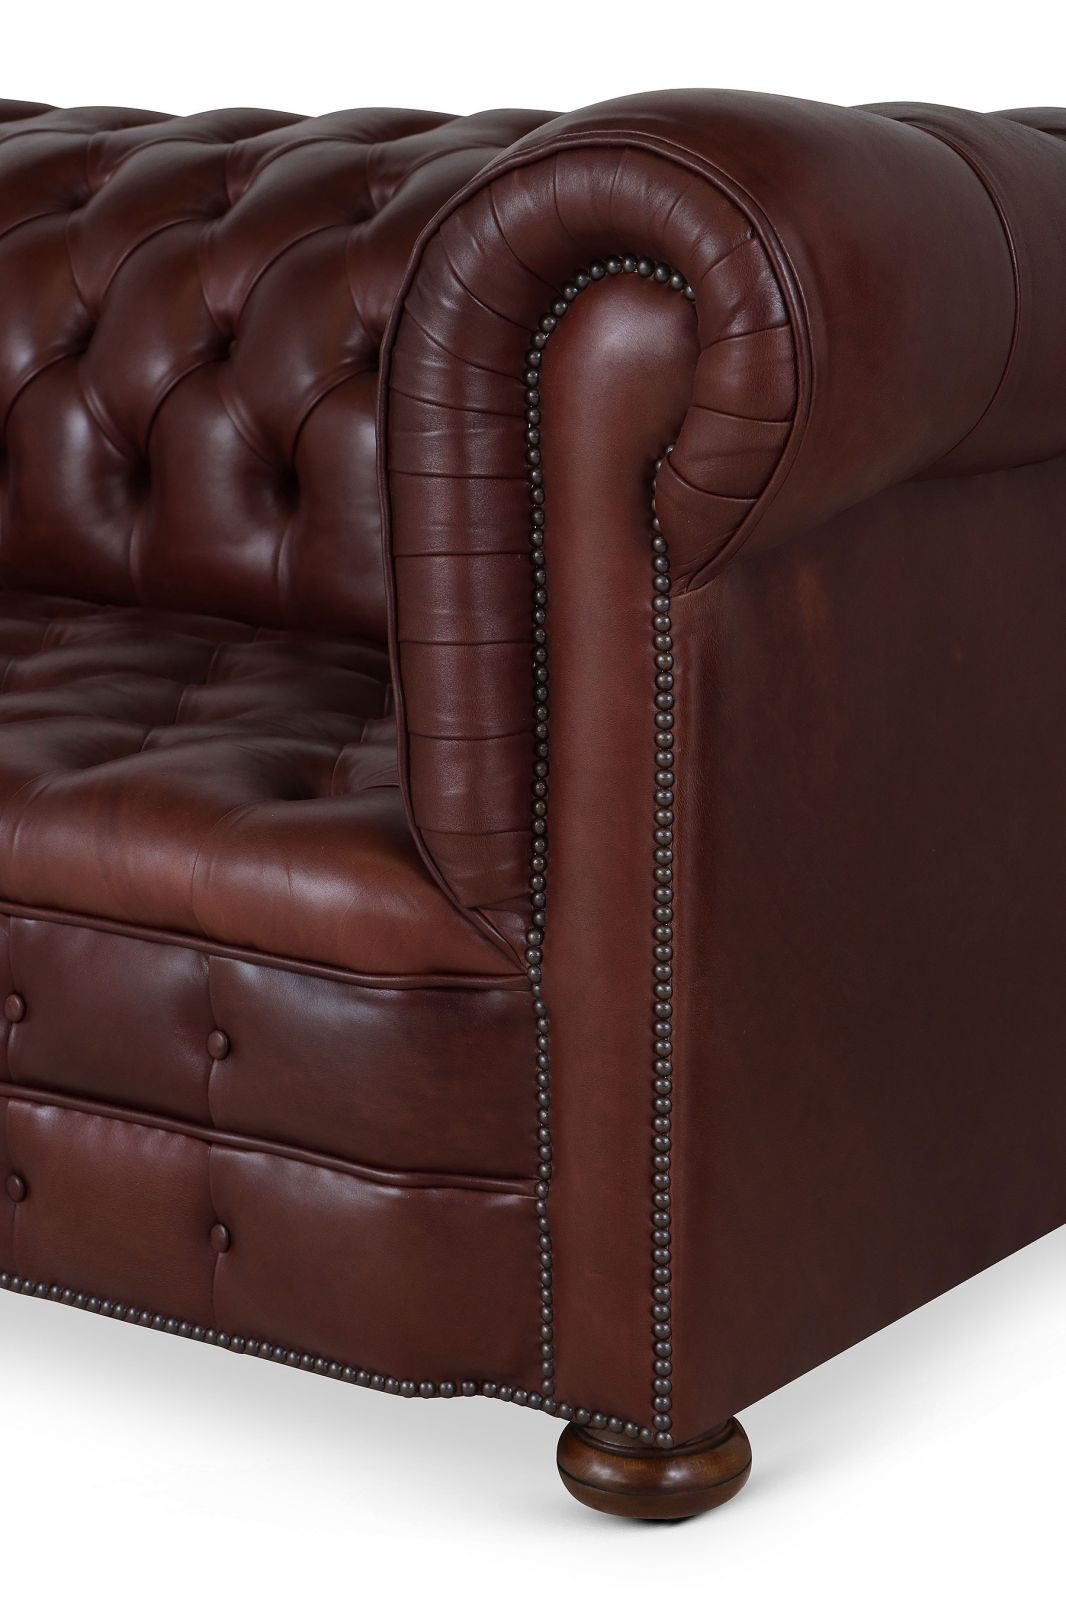 Dark brown leather fully buttoned Chesterfield - 4 seat